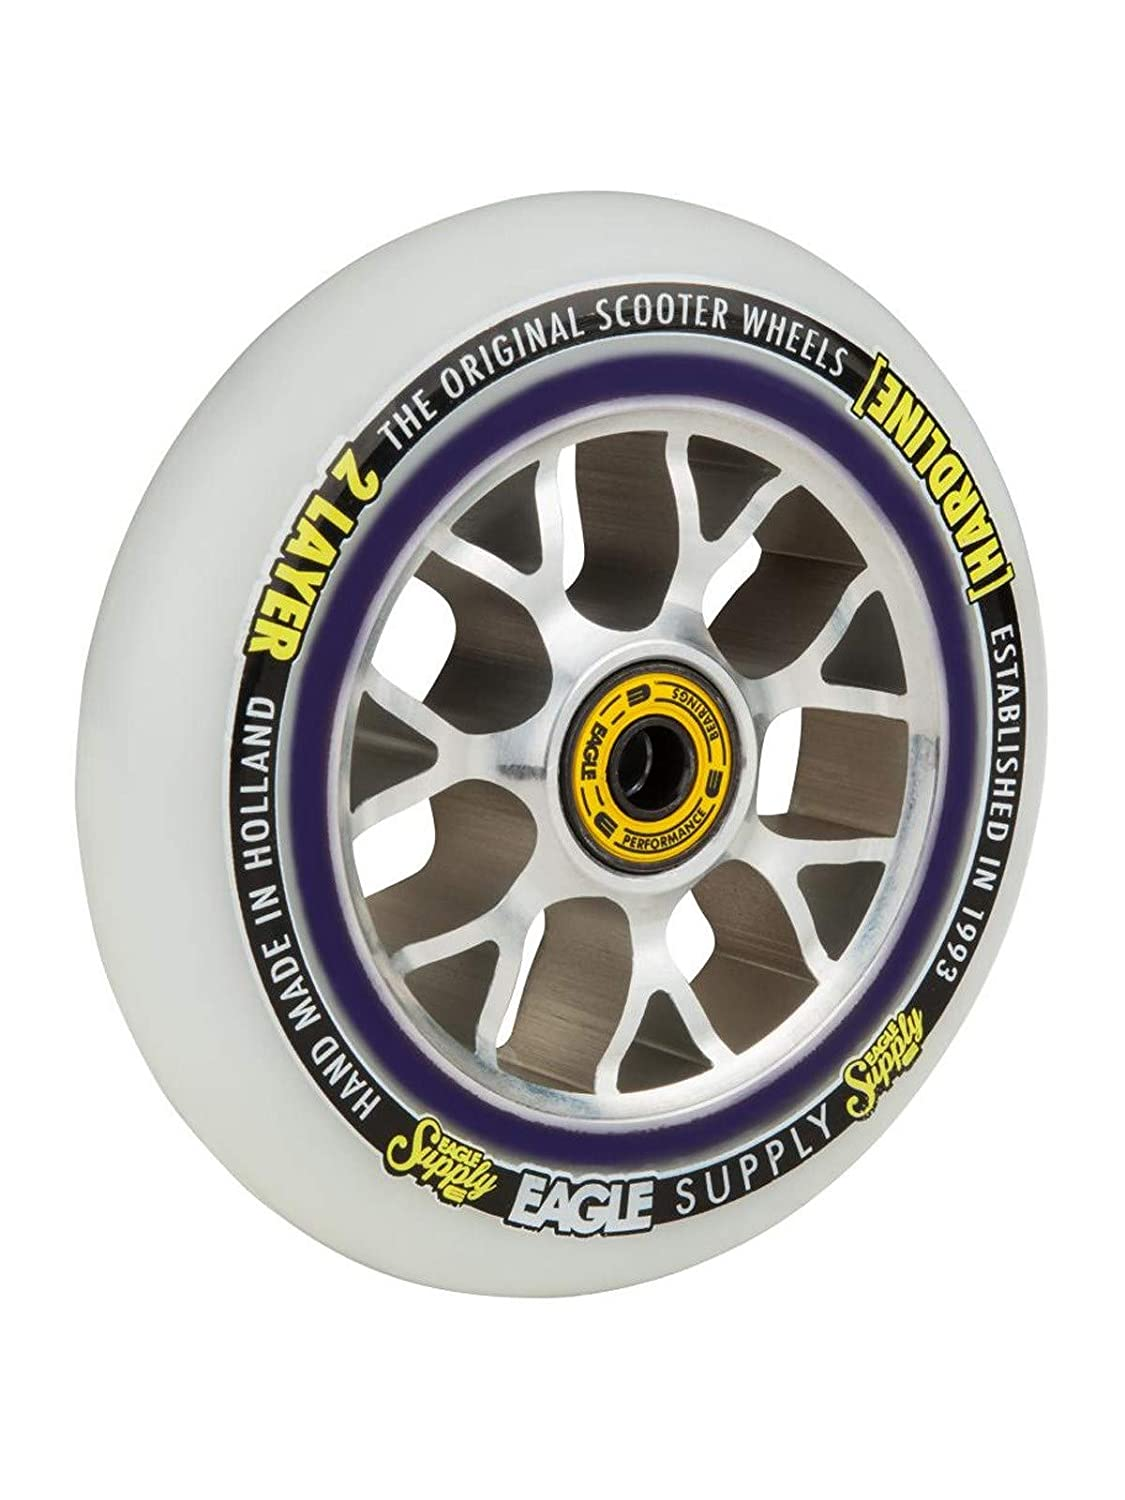 115mm Single Scooter Wheel Eagle Supply Silver-White H-Line X6 Snowballs